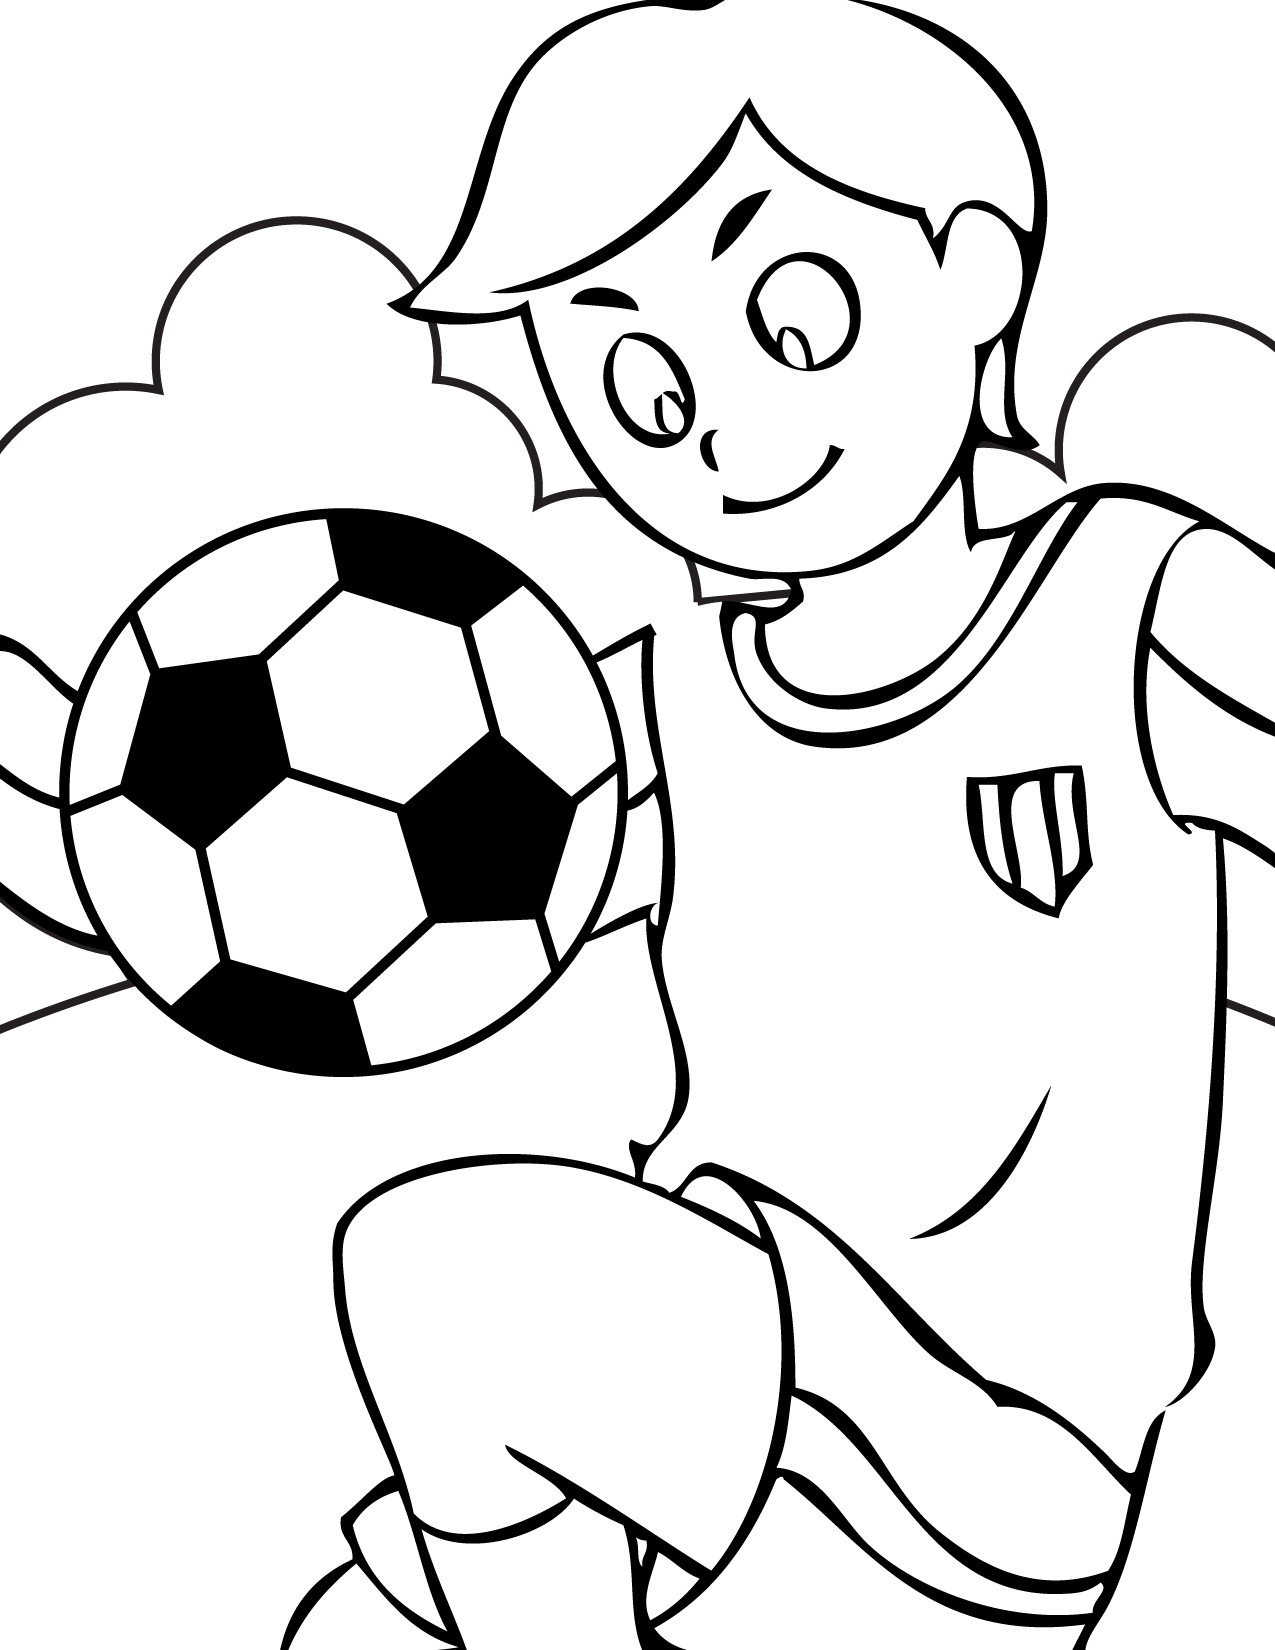 Soccer Coloring Pages For Boys  Free Printable Soccer Coloring Pages For Kids